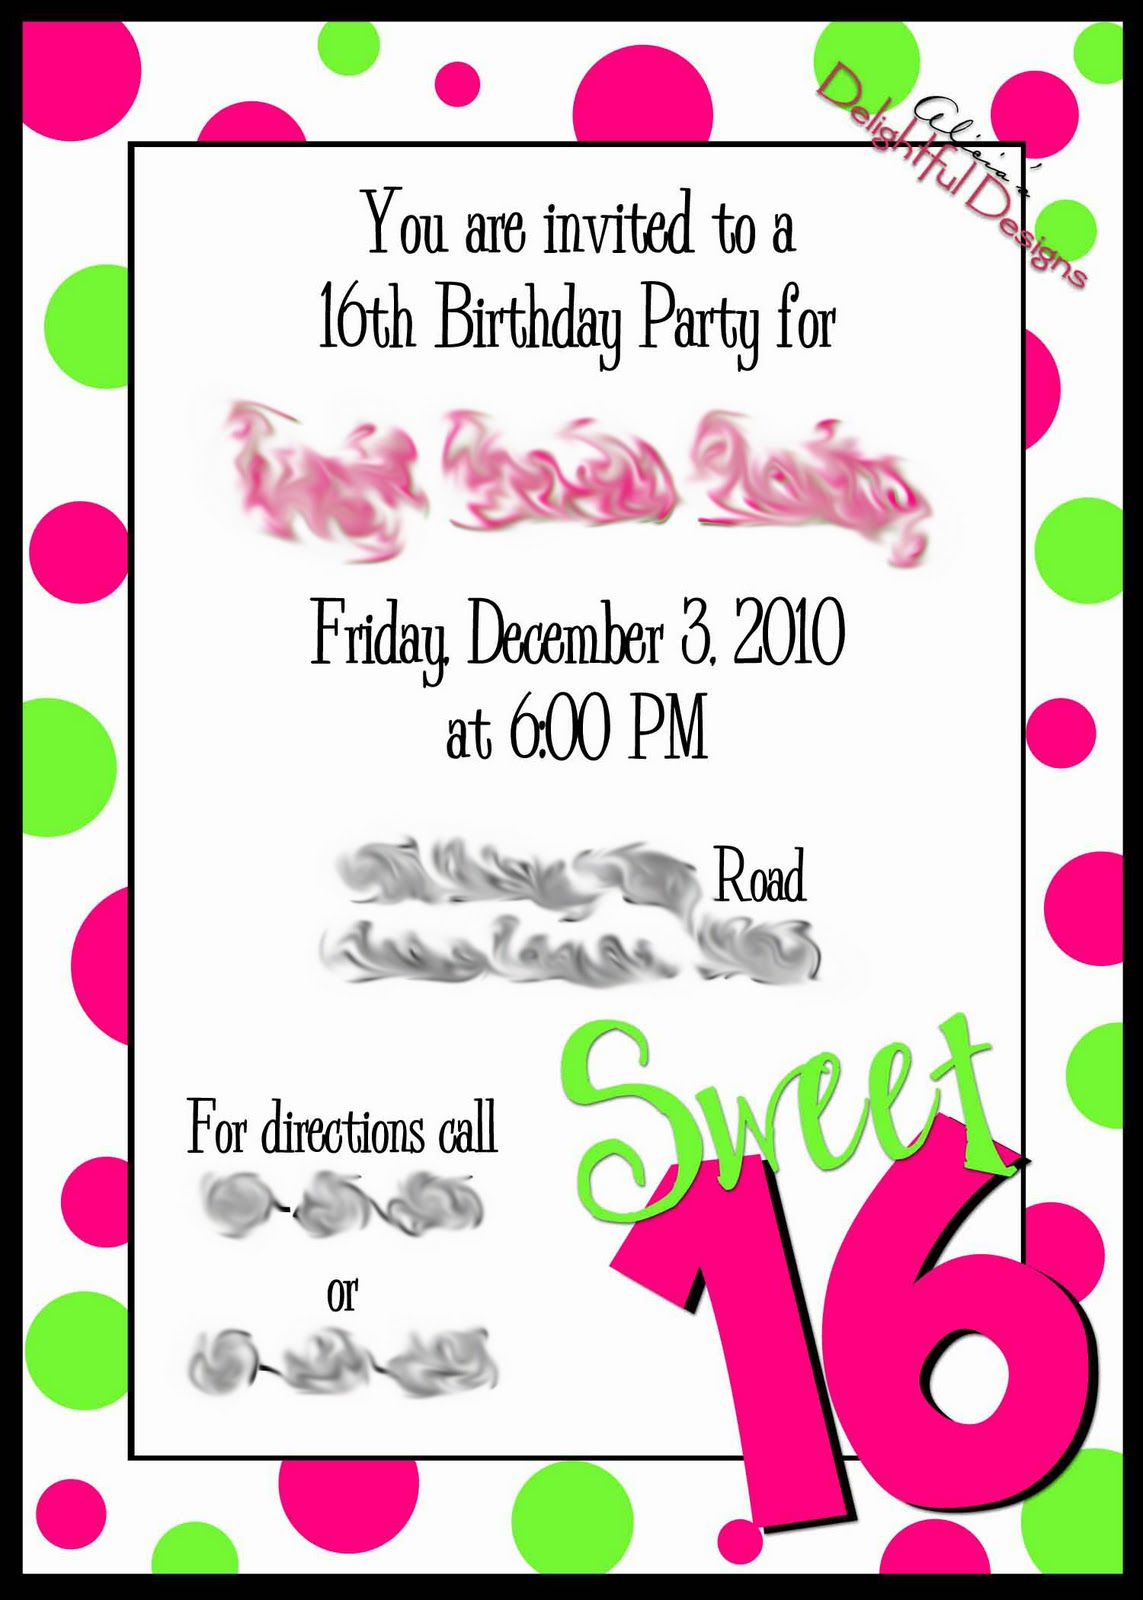 free printable 16th birthday party invitation templates ; free_birthday_invitations_templates_1